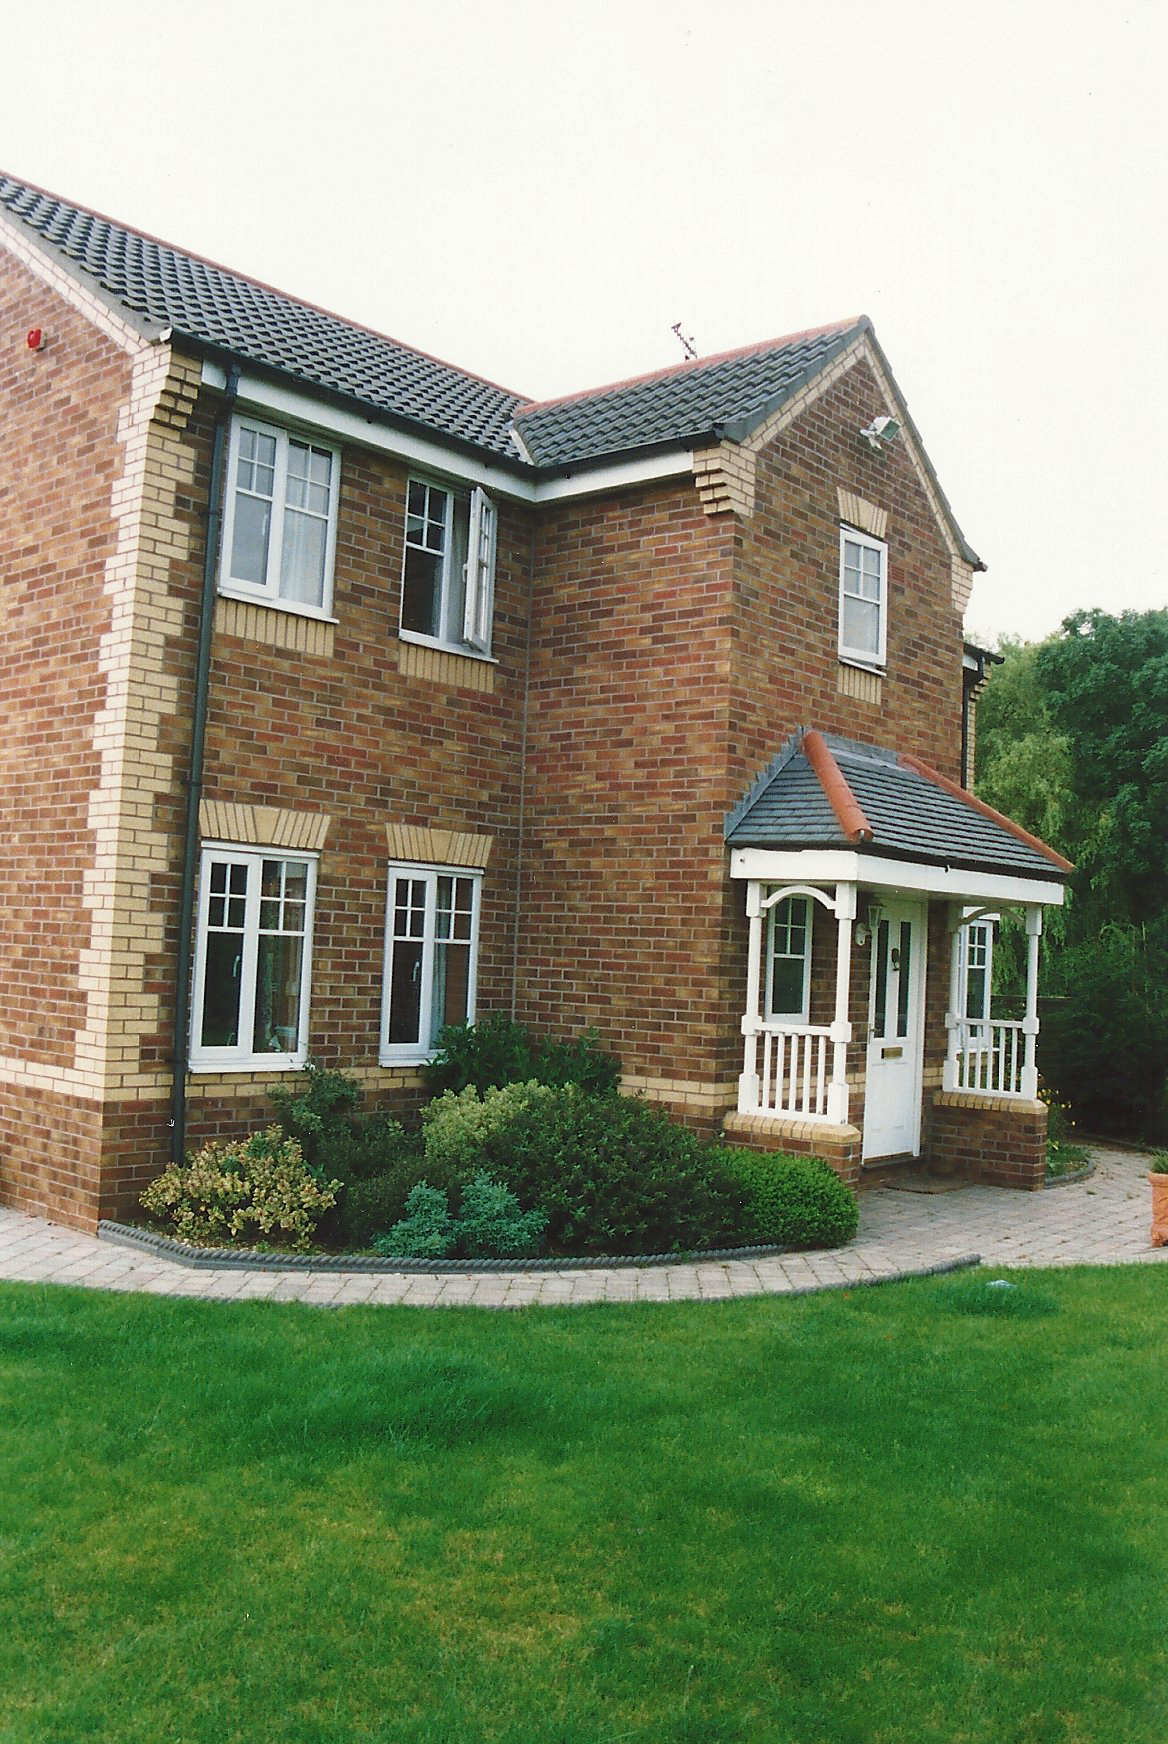 B4 BEVERLEY ROAD, DRIFFIELD.JPG